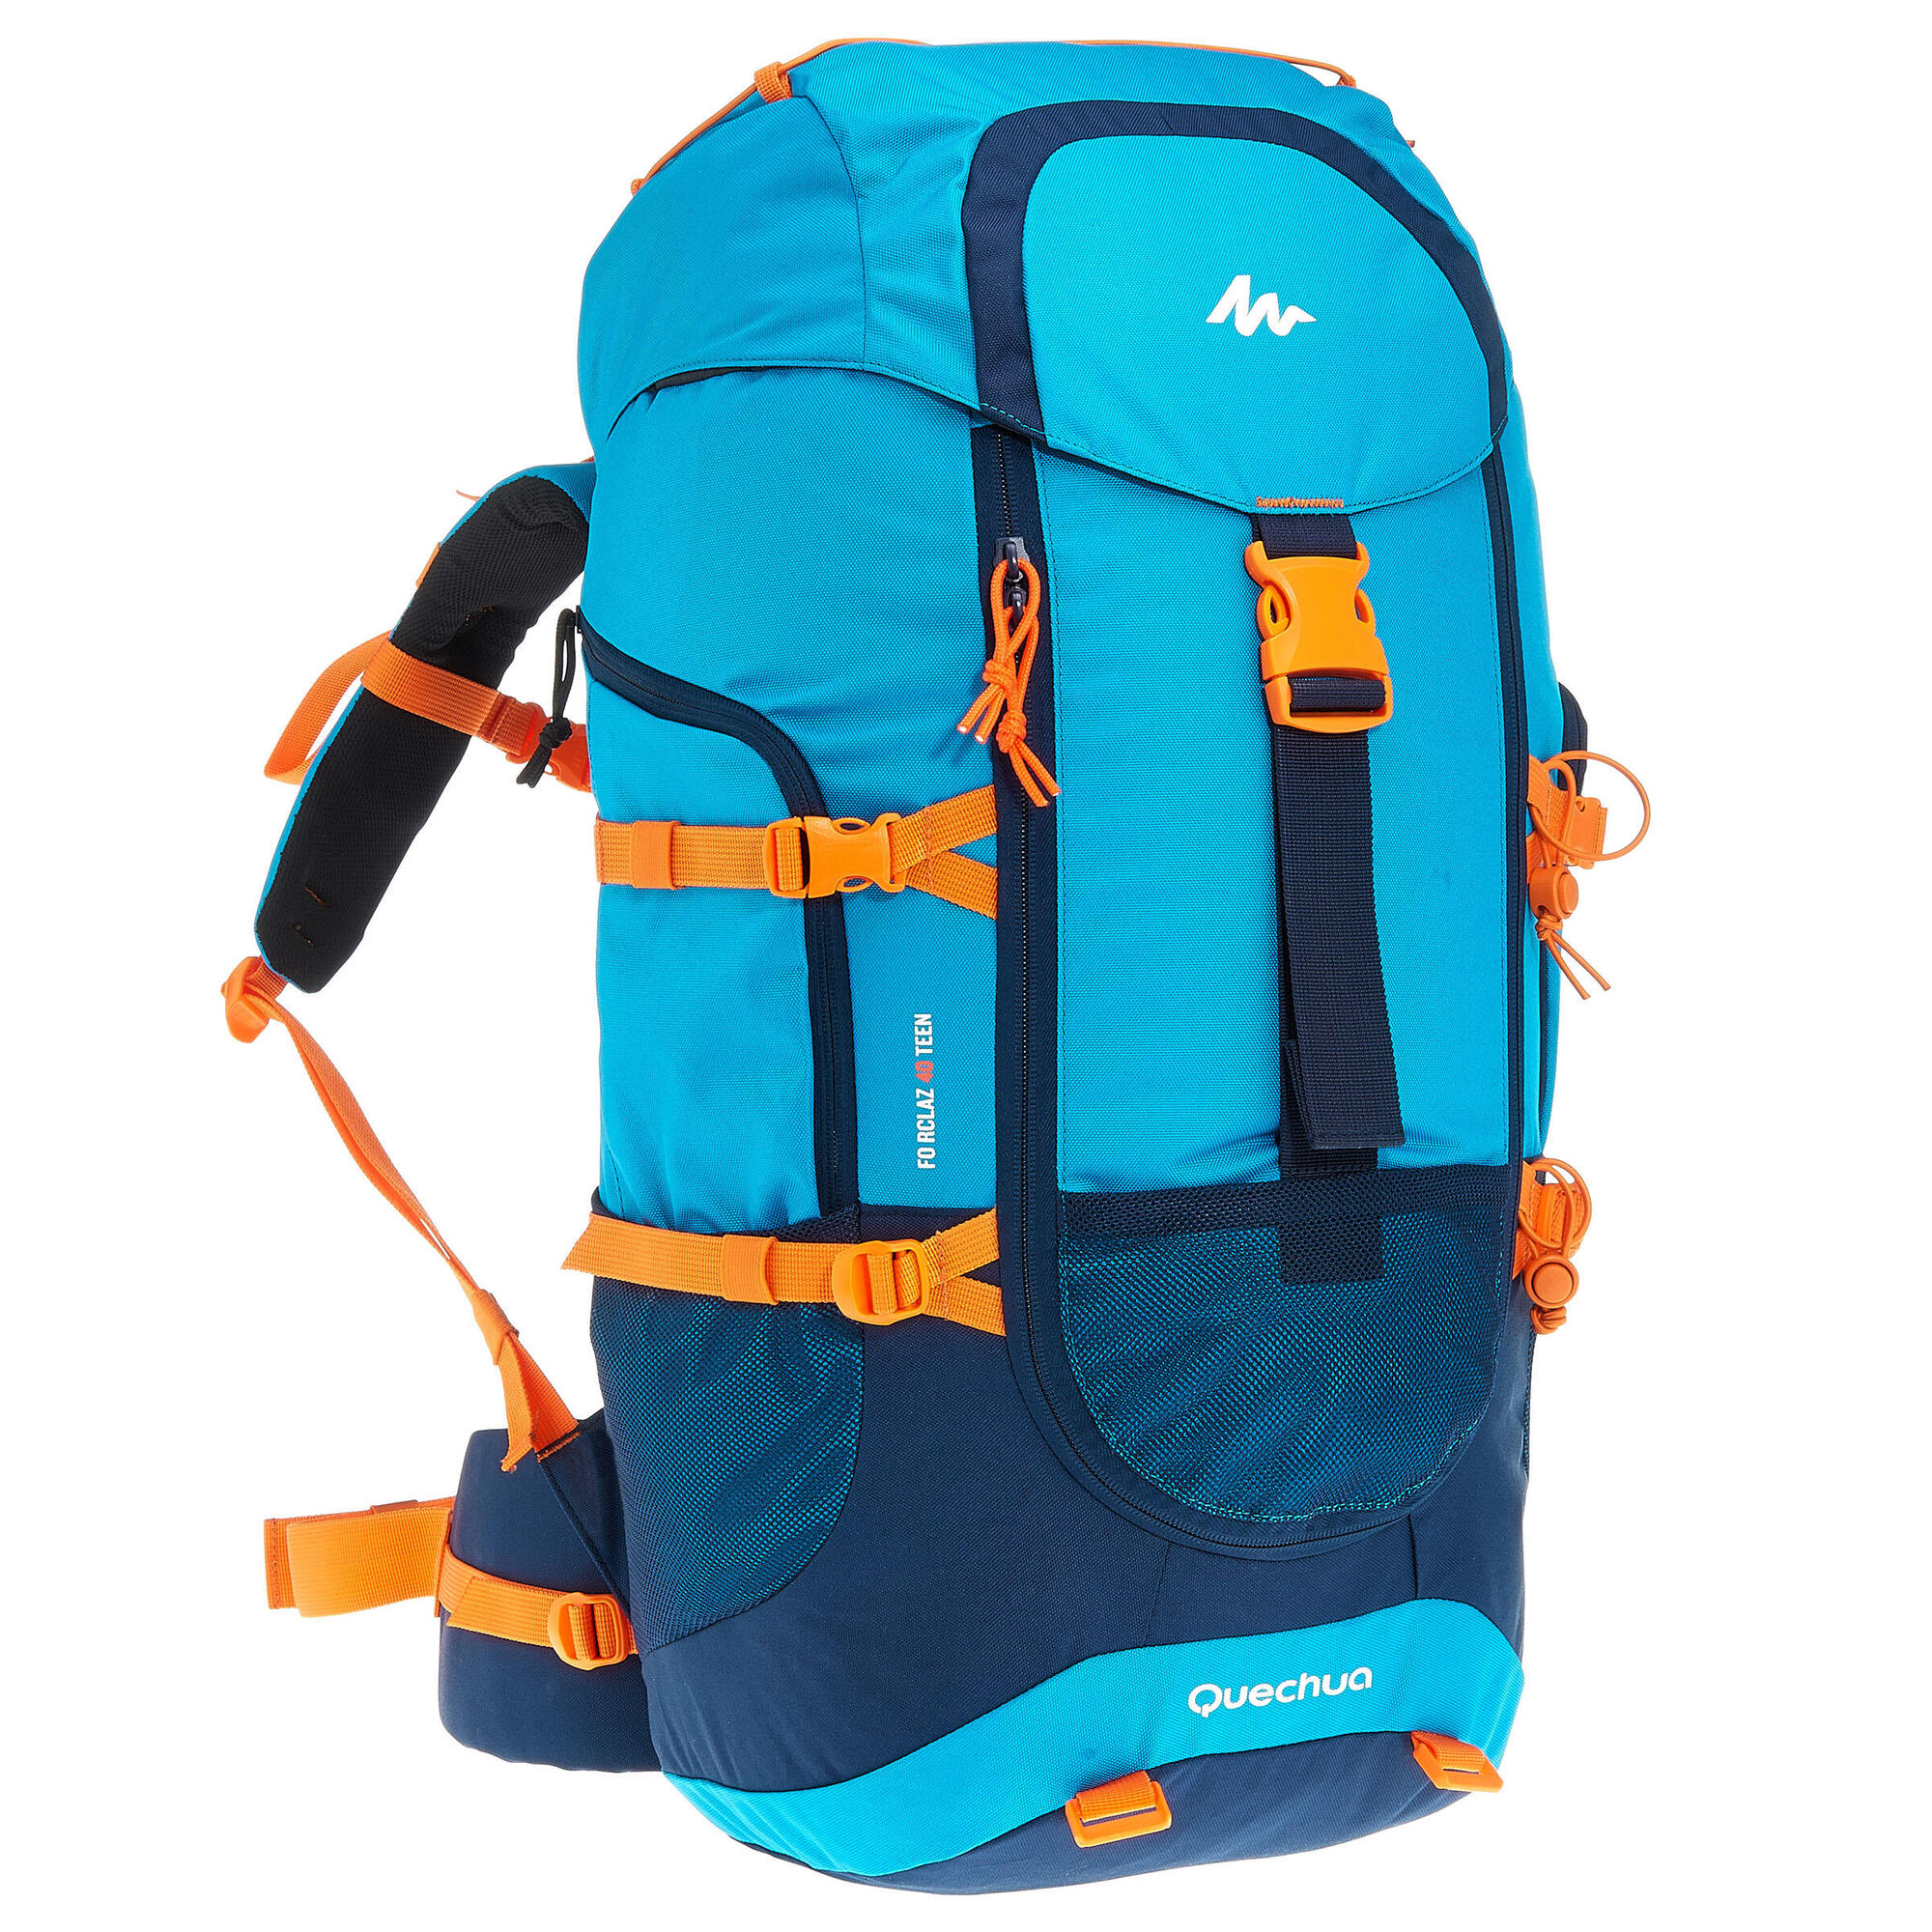 Forclaz 40 L Junior hiking backpack